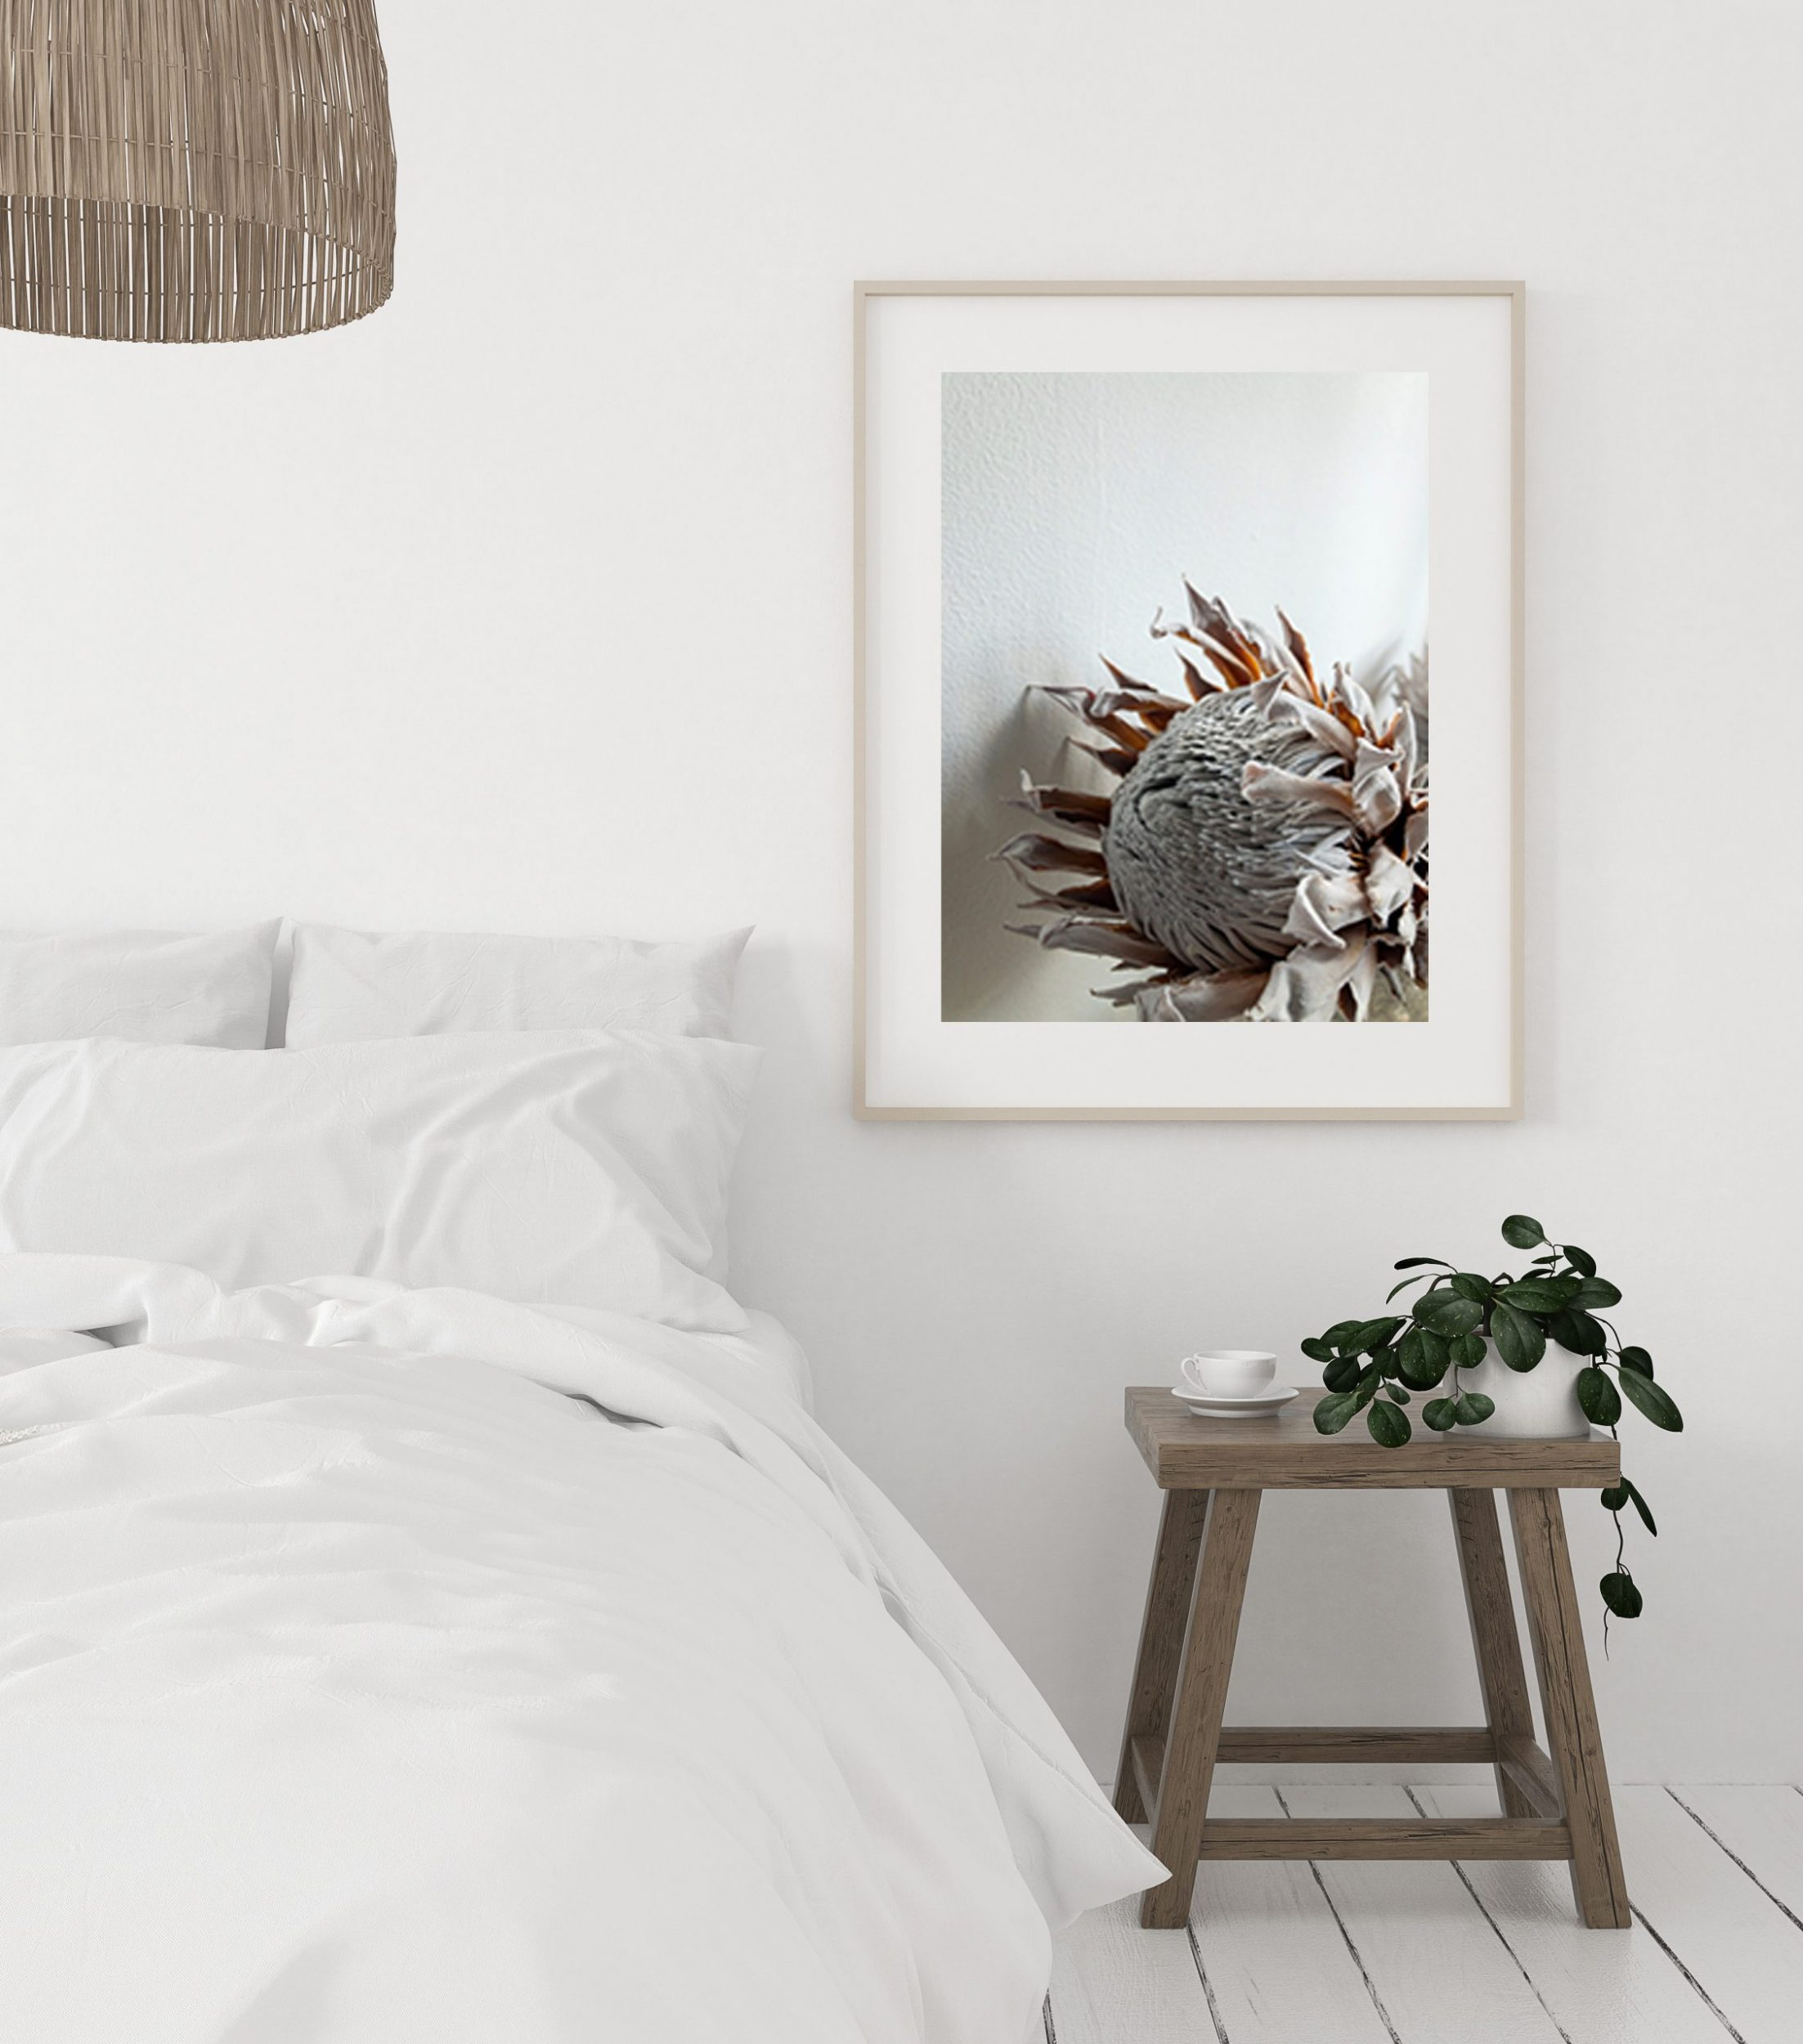 protea 2 calm in bedroom